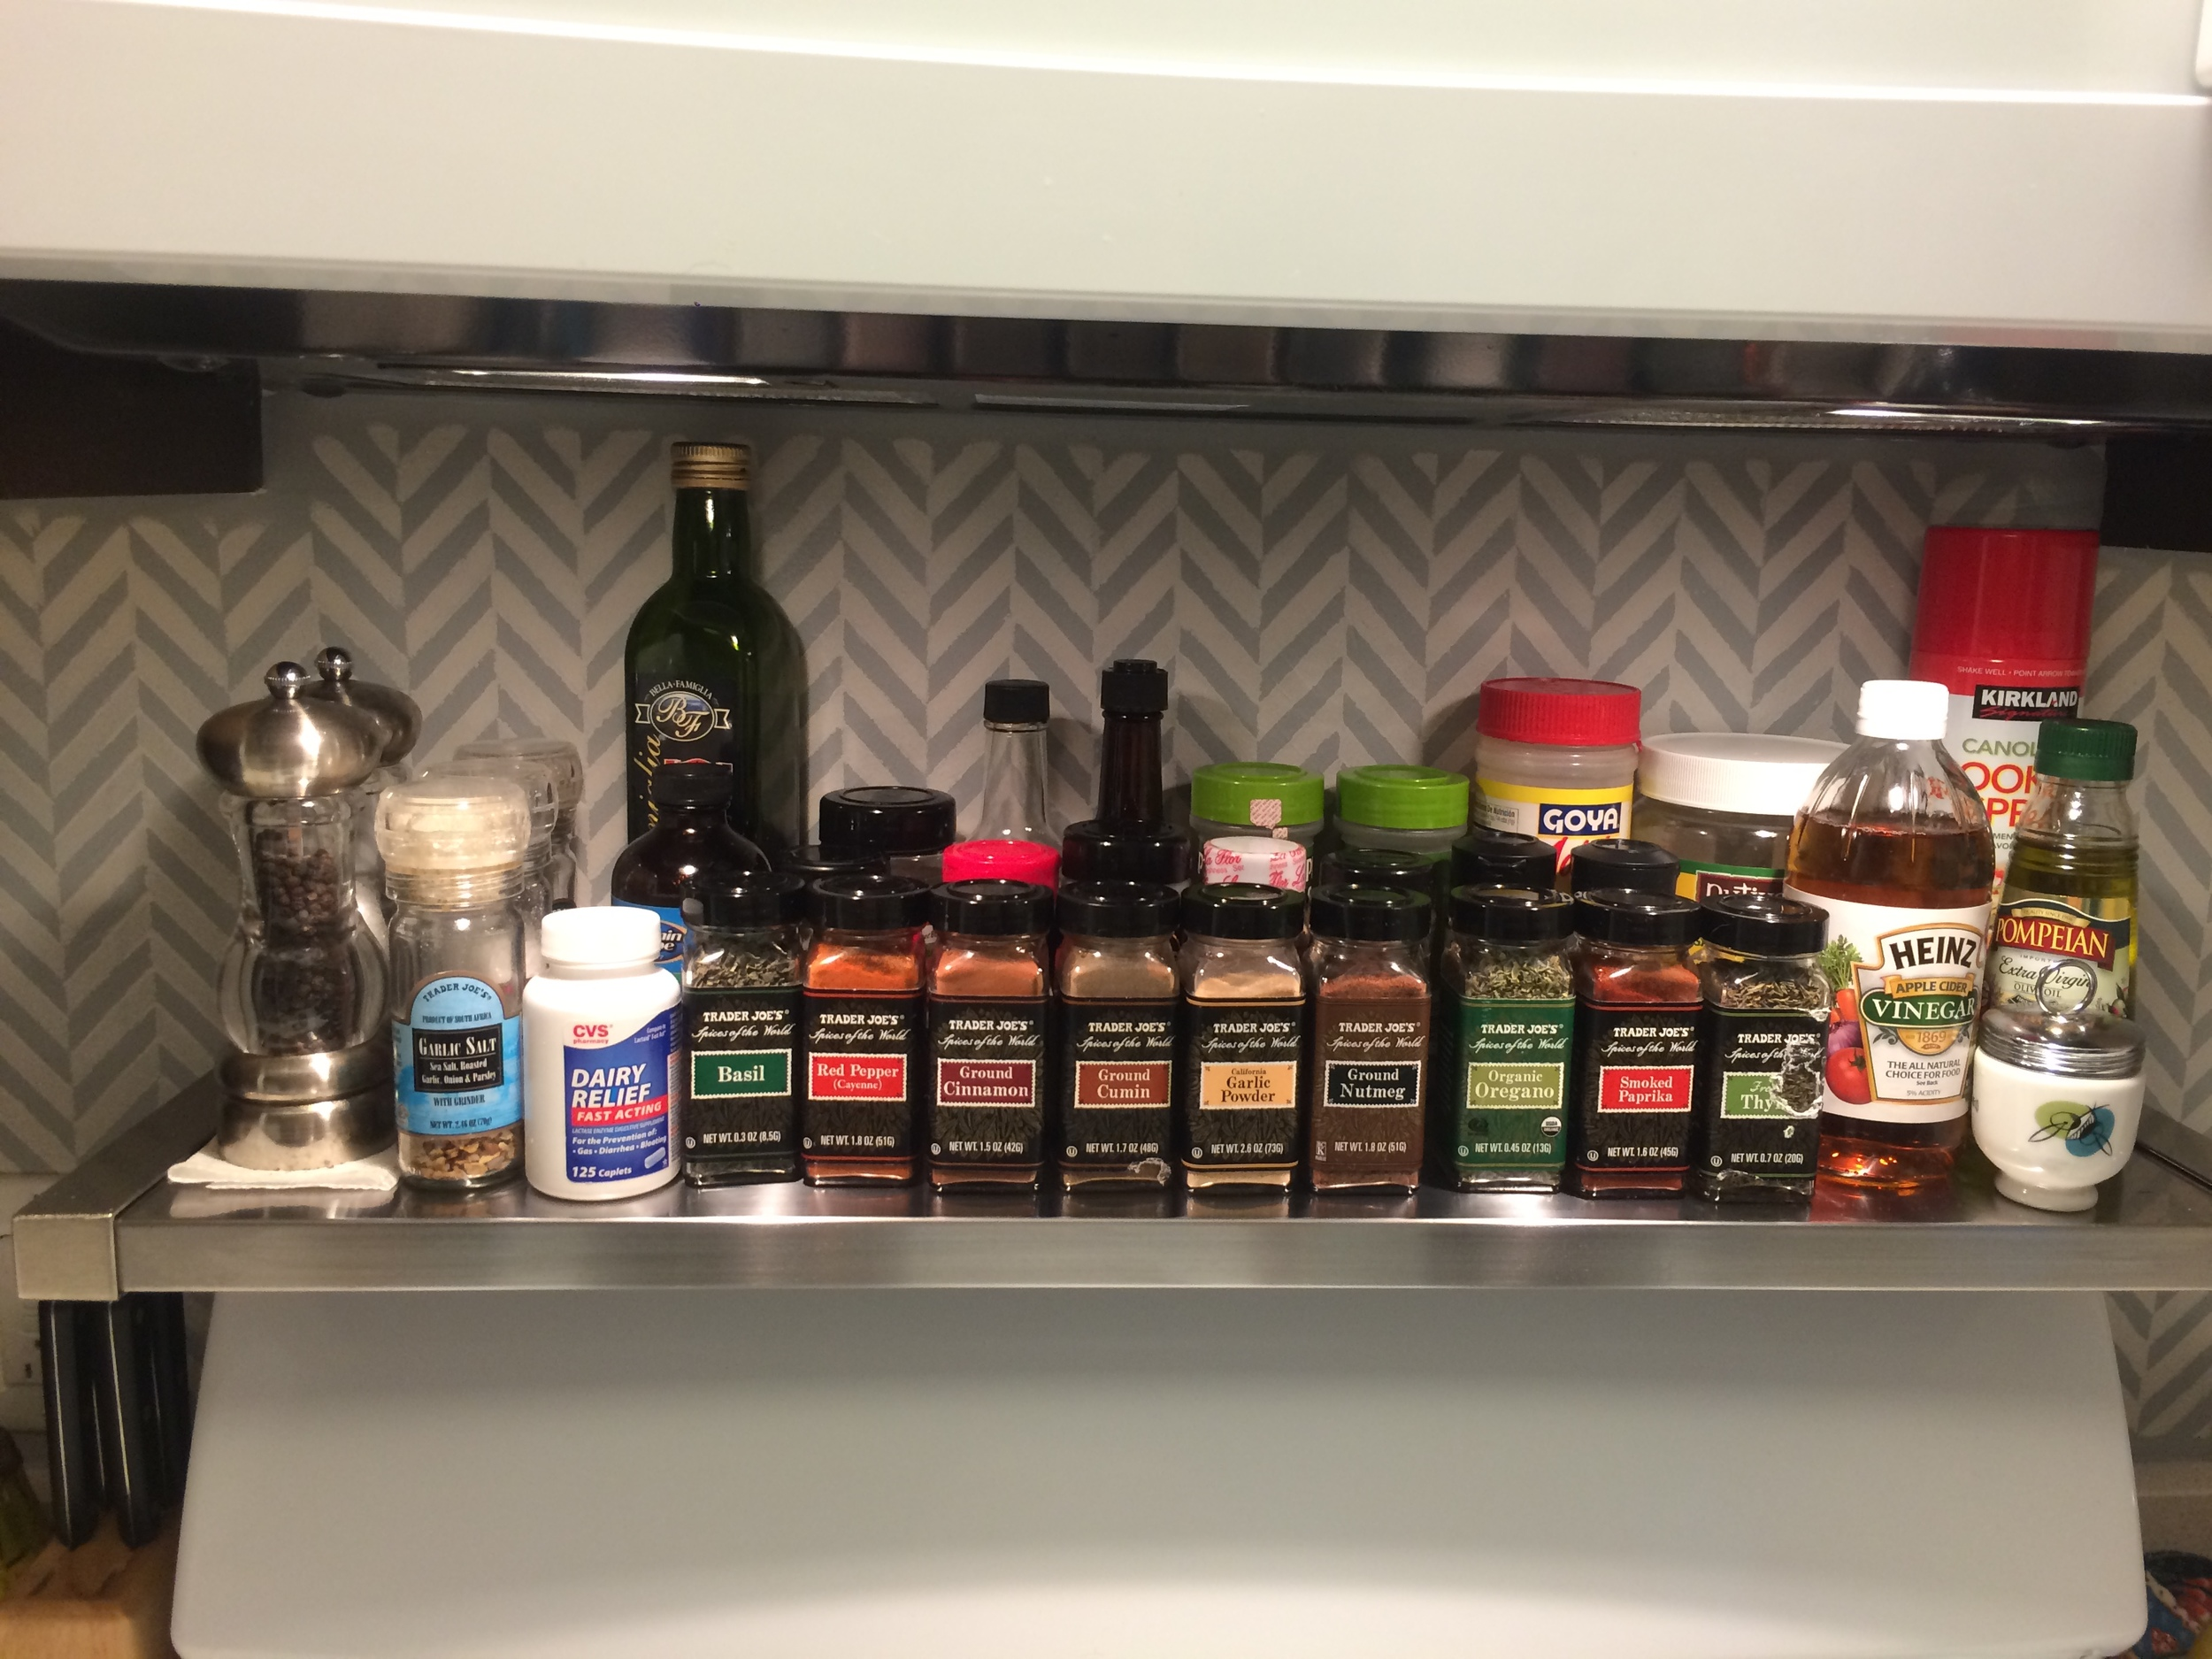 This metal shelf is a perfect fit to have easy access to spices while cooking. It also frees up space in the existing cabinets as well.